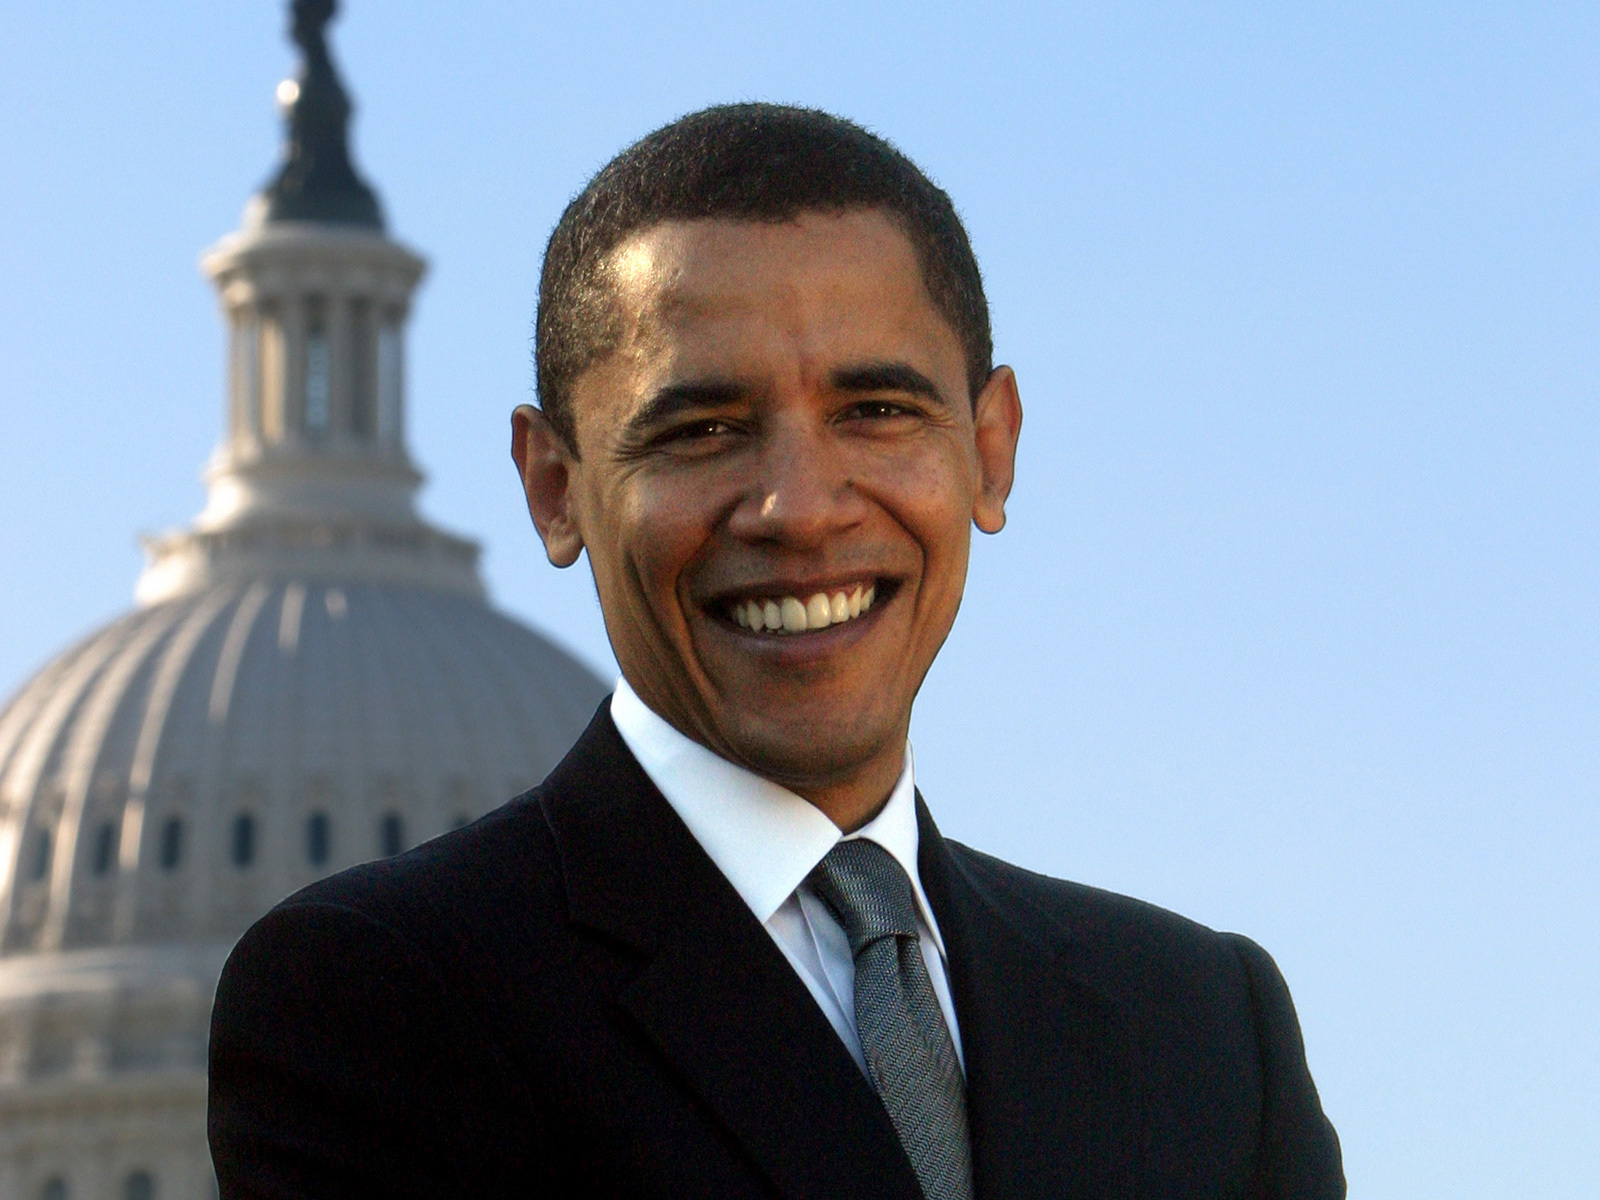 Presidents barack obama of HD Wallpaper